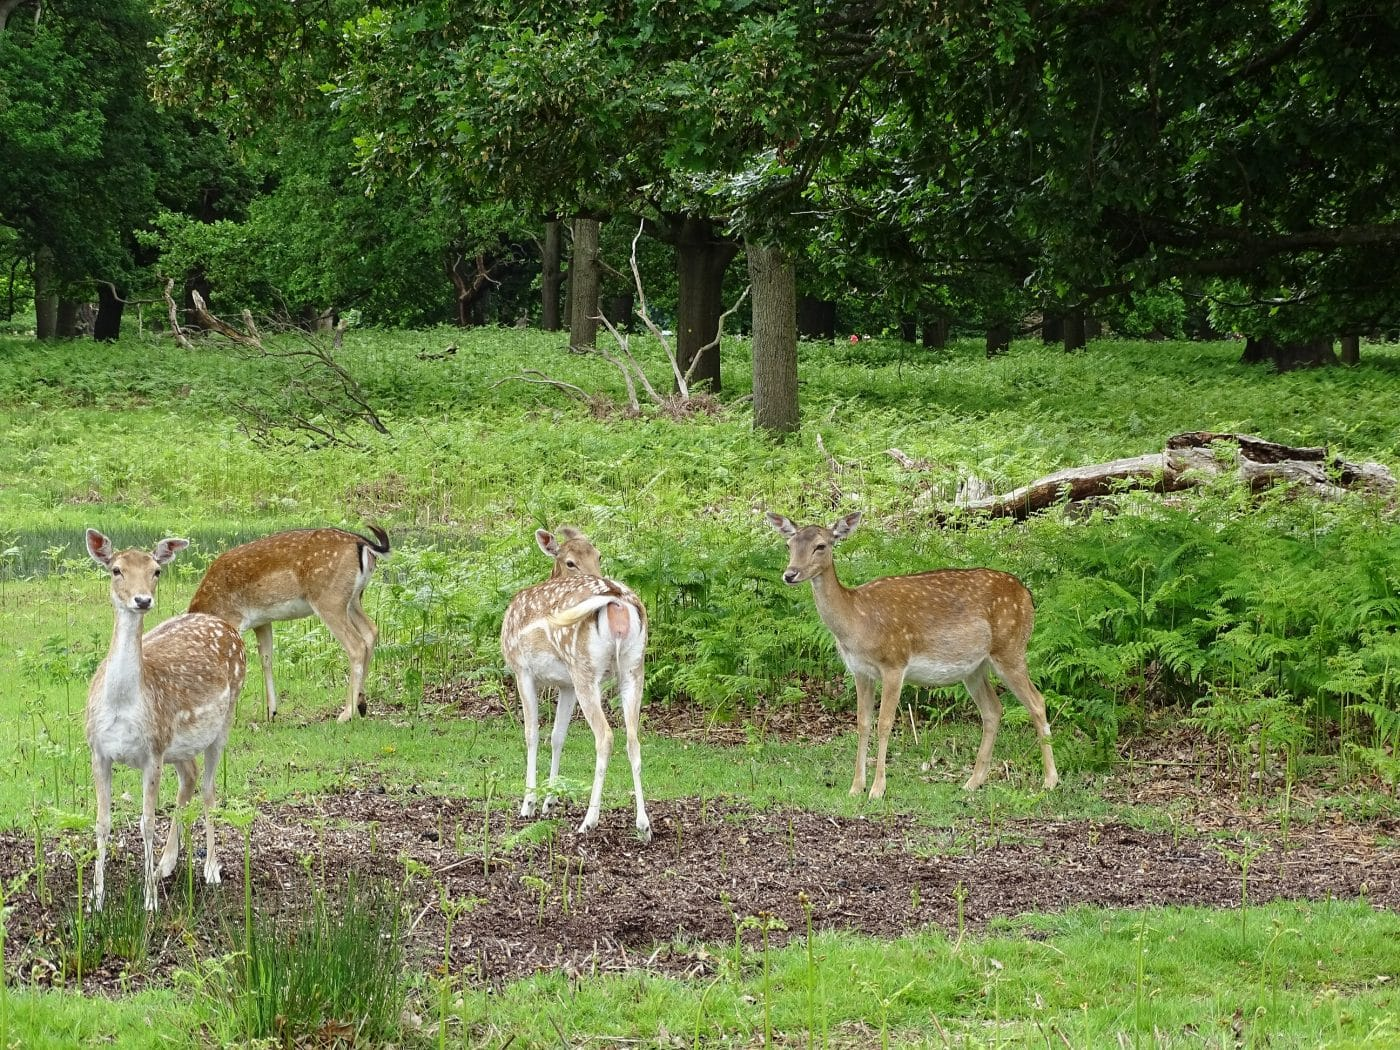 Explore Richmond with Lingua Holidays and see deer in Richmond Park